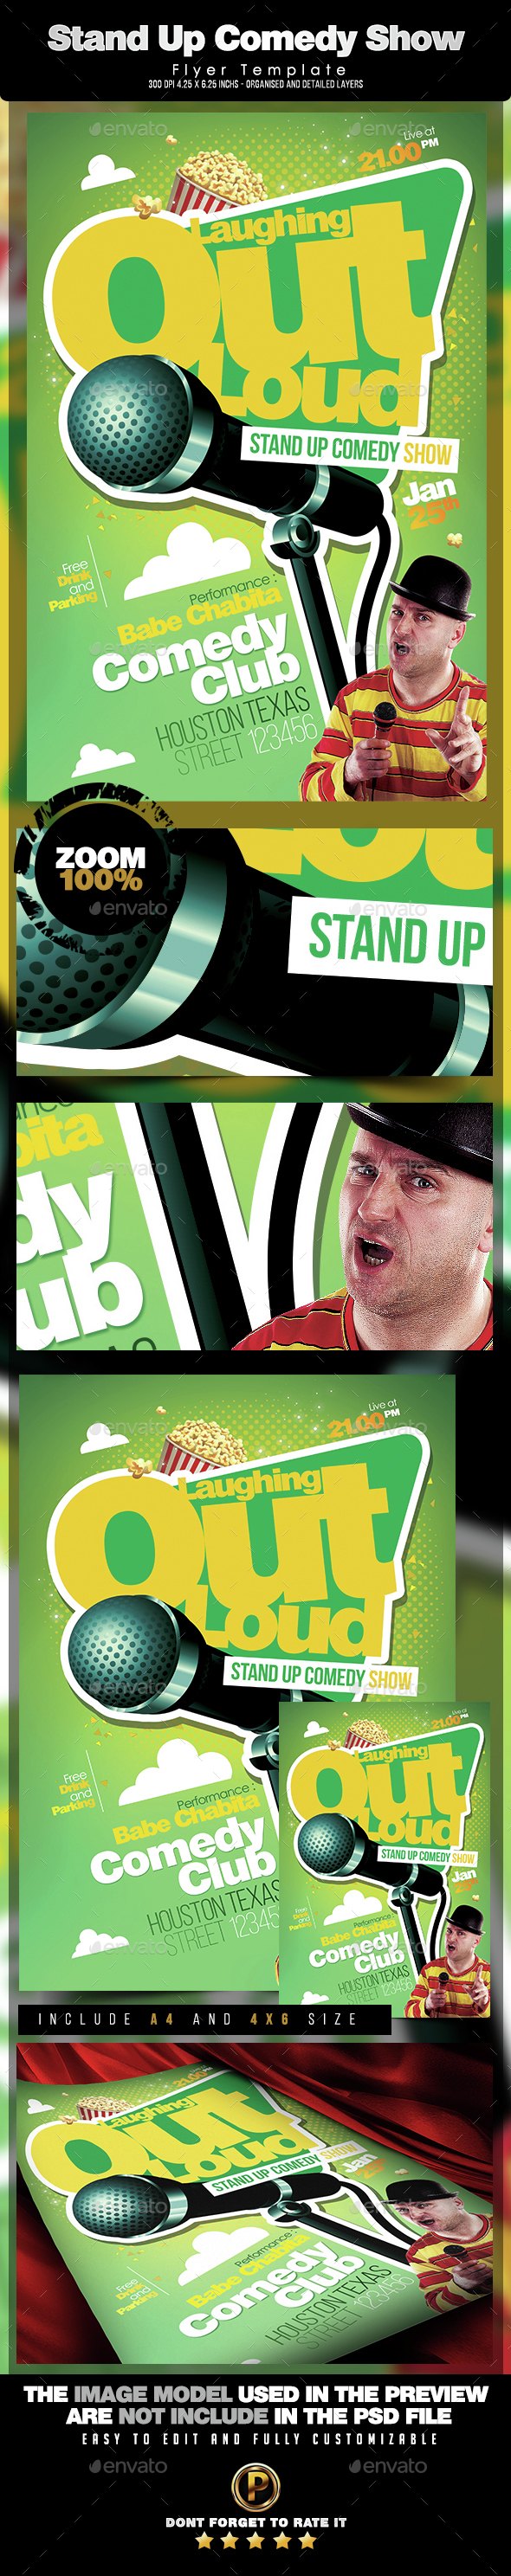 Stand Up Comedy Show Flyer Template - Events Flyers